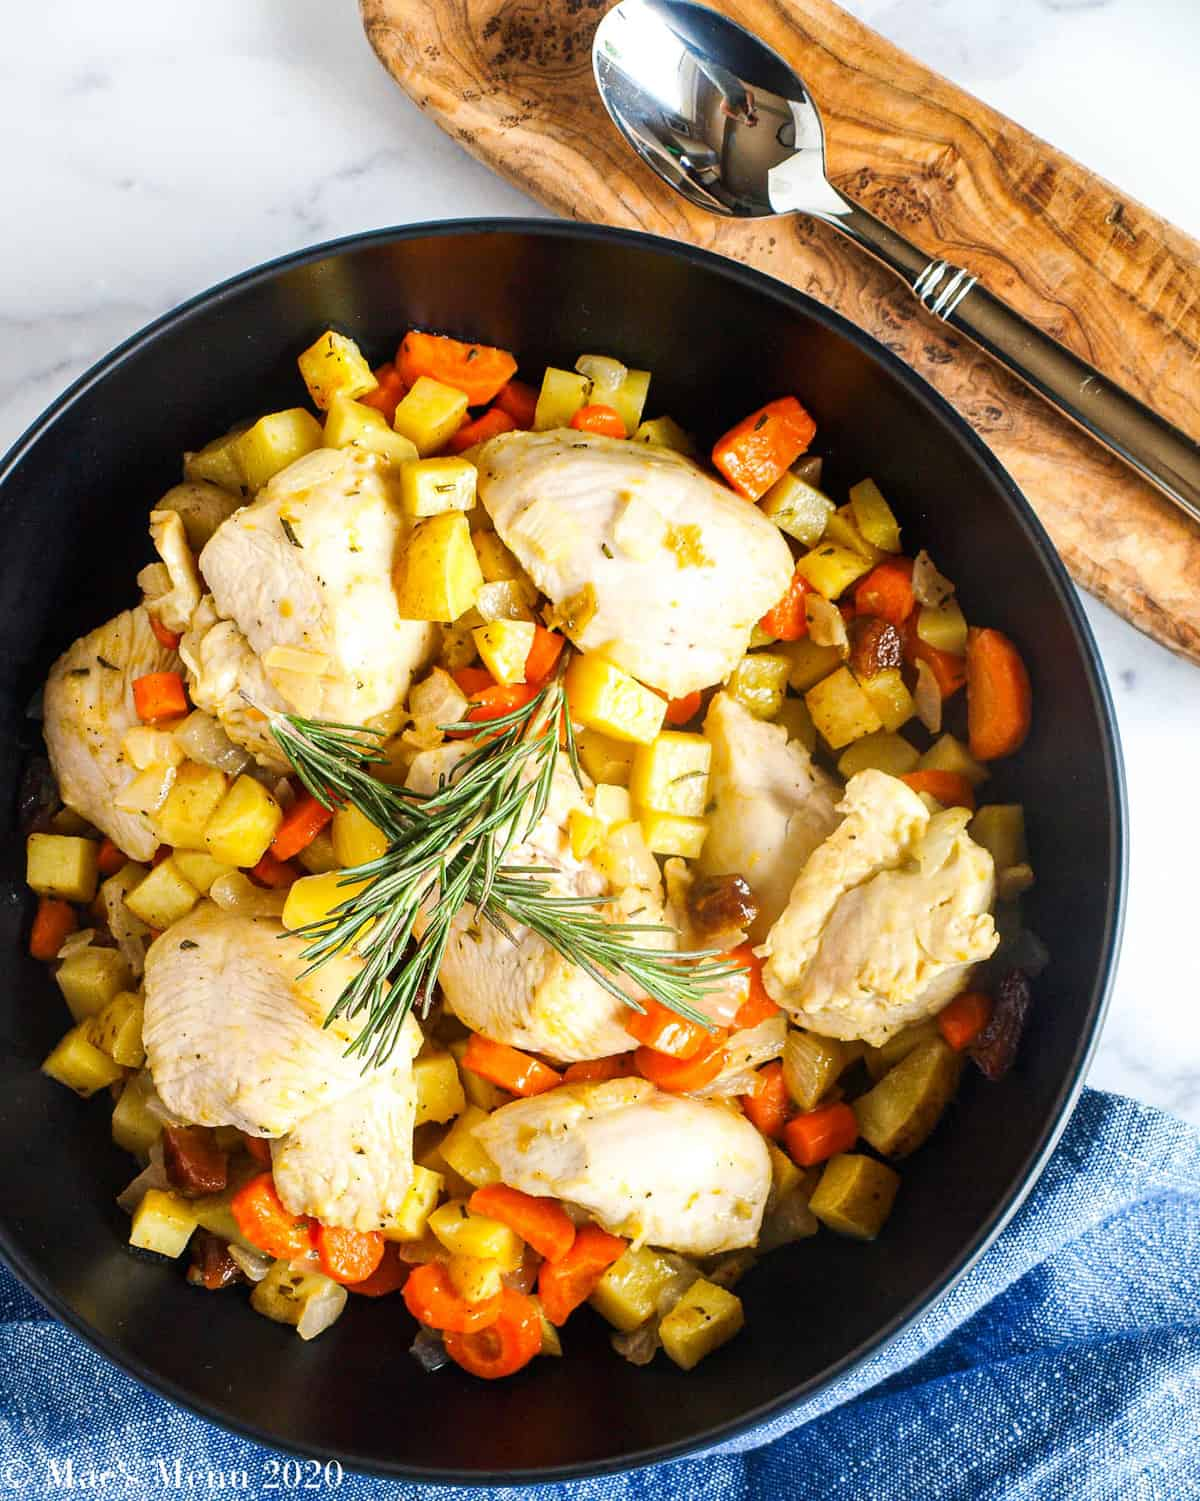 An overhead shot of a large black serving bowl of sheet pan apricot chicken next to a blue towel and wooden spoon holder